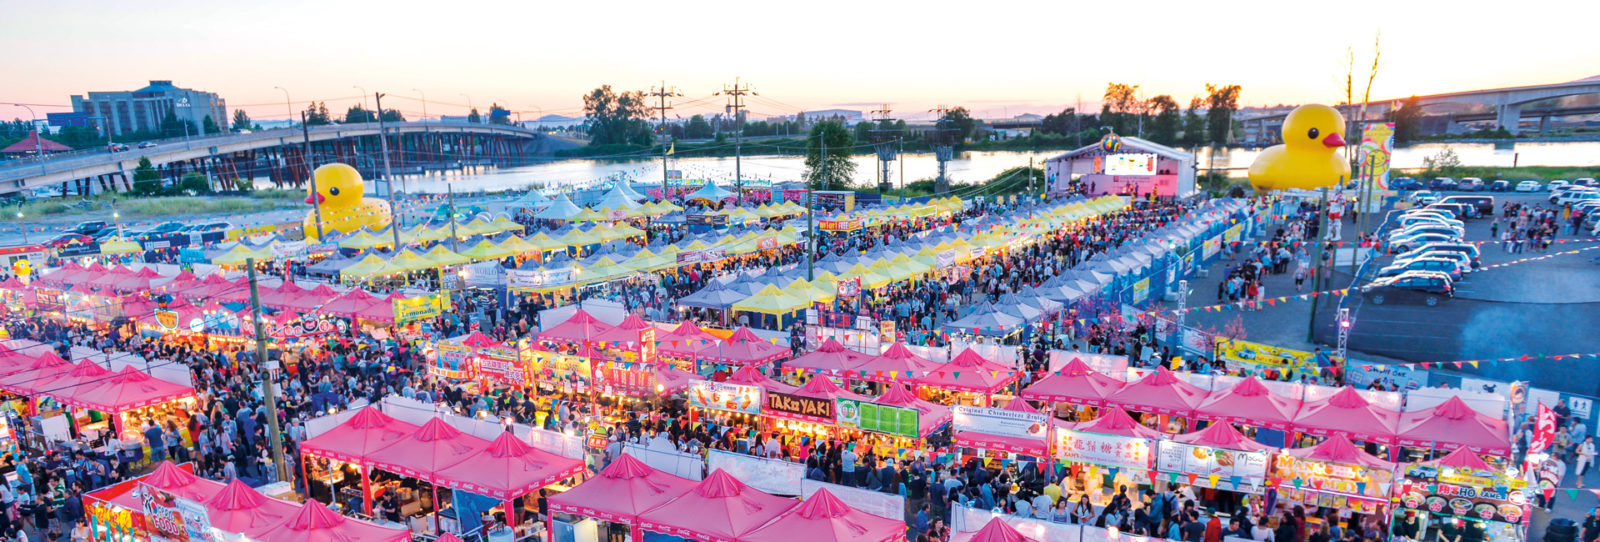 1920x650_richmondnightmarket-henryliu